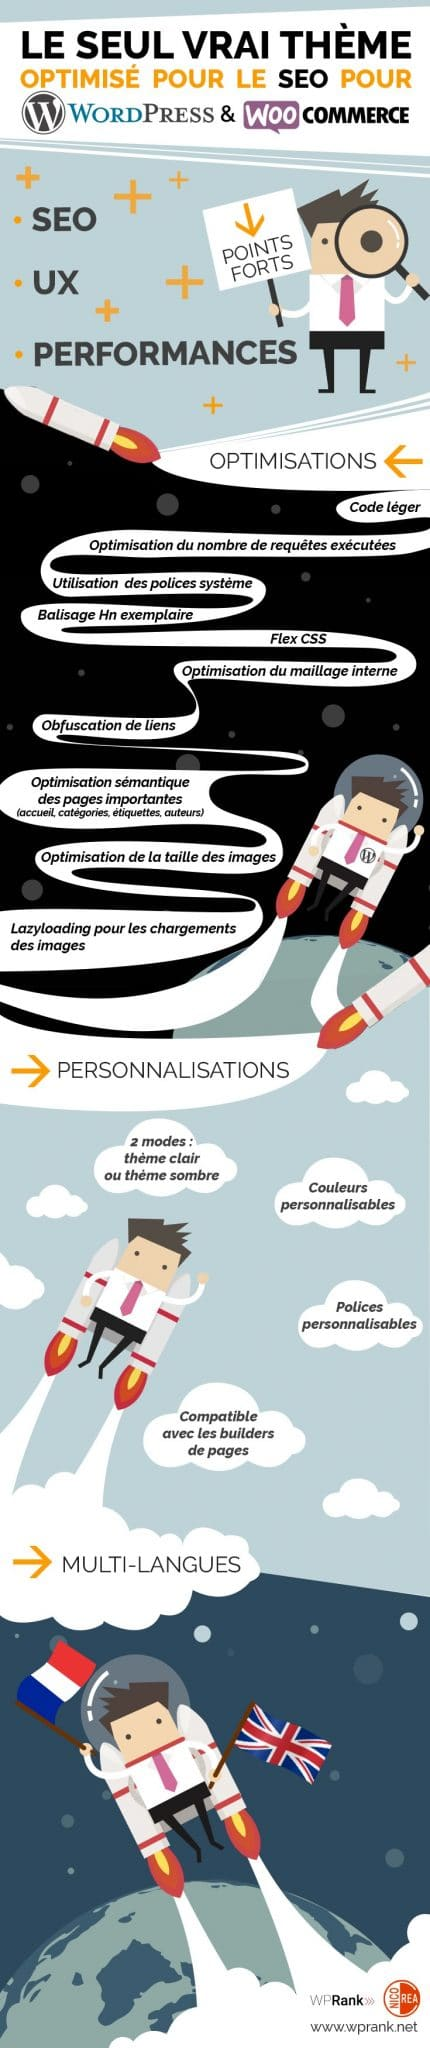 infographie SEO Mag